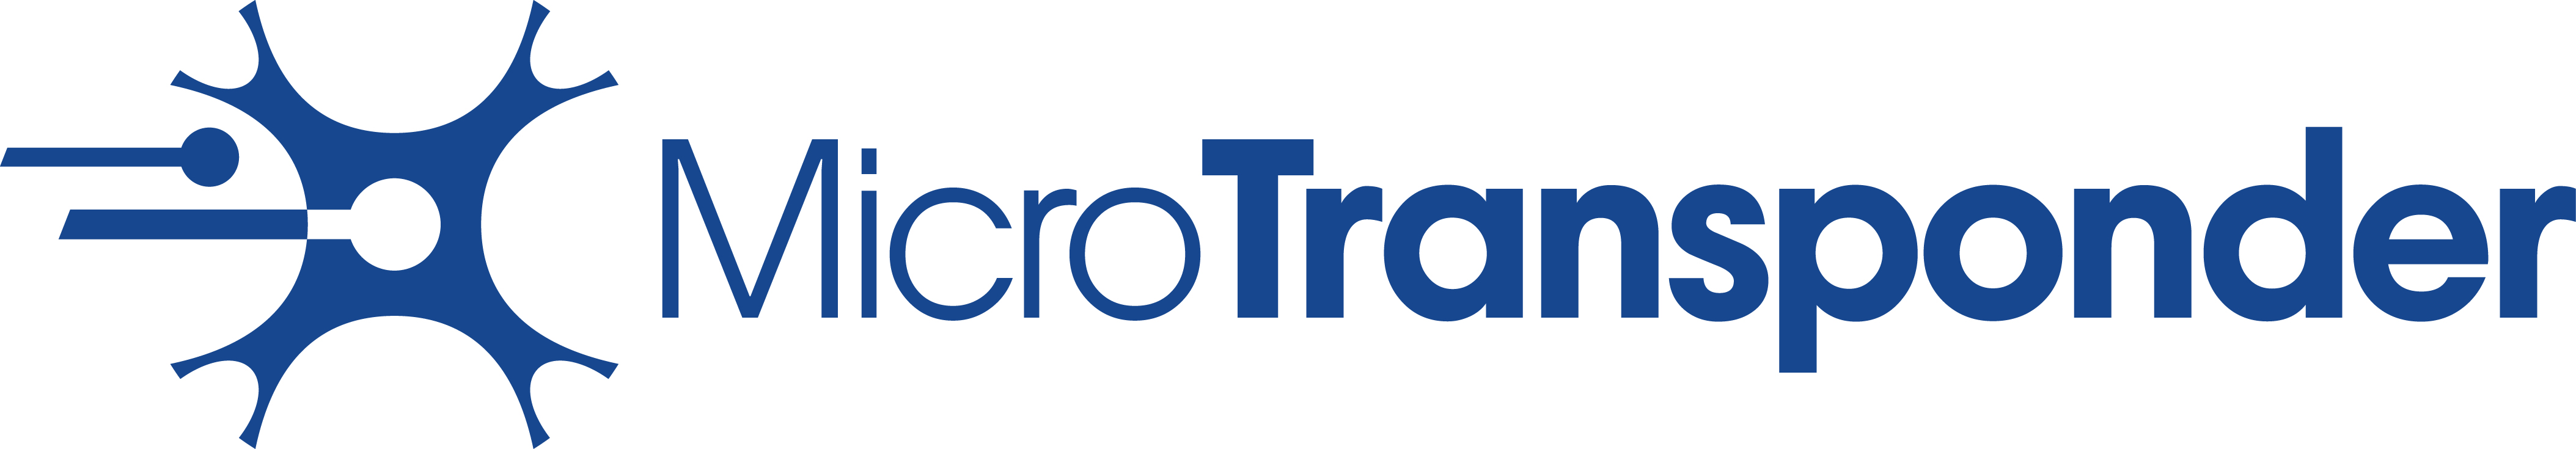 Microtransponder Logo